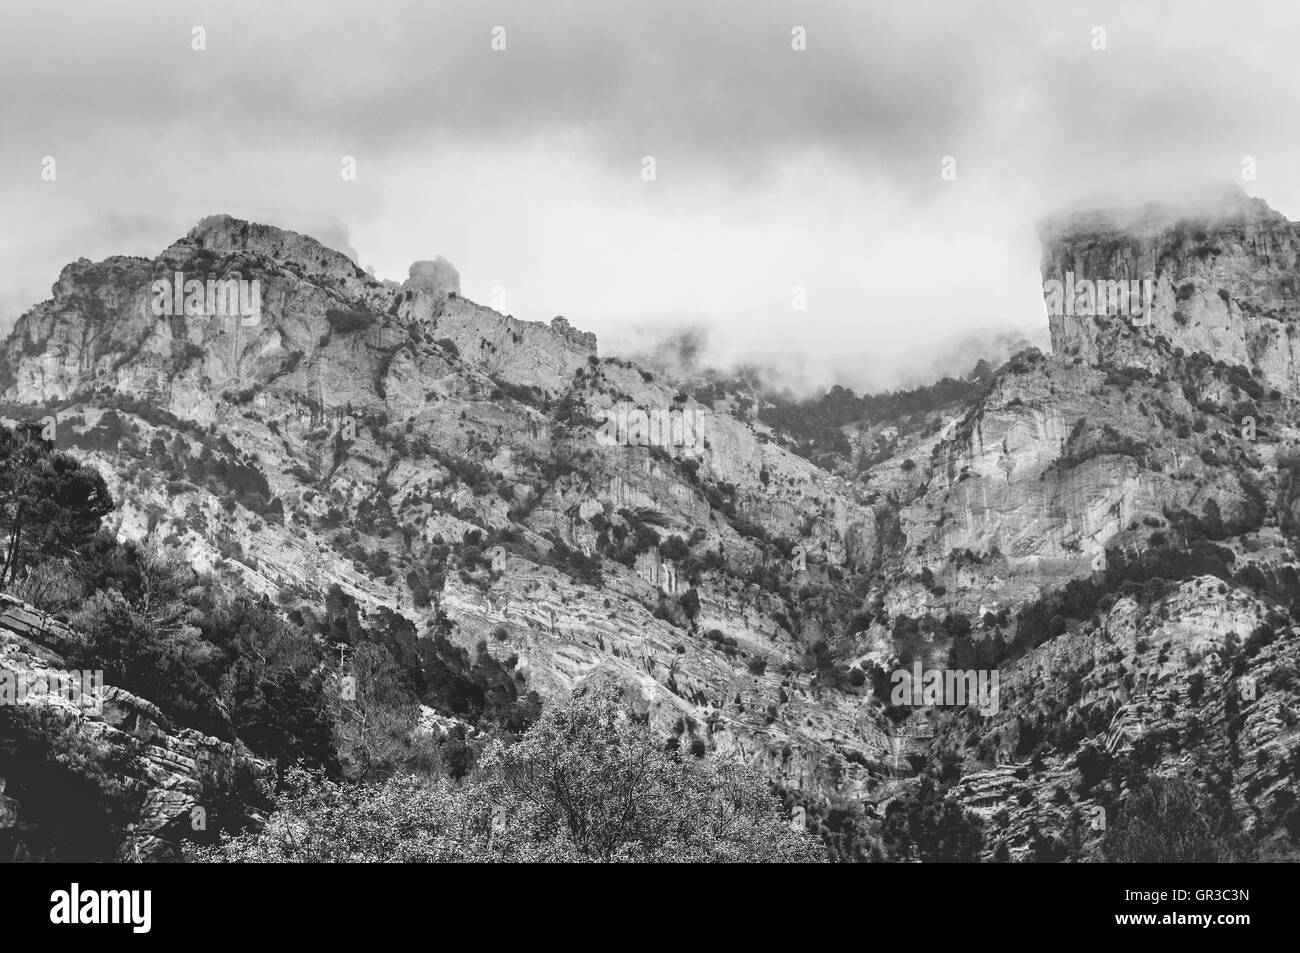 Black and white cloudy mountains in Cazorla, Jaen, Spain - Stock Image